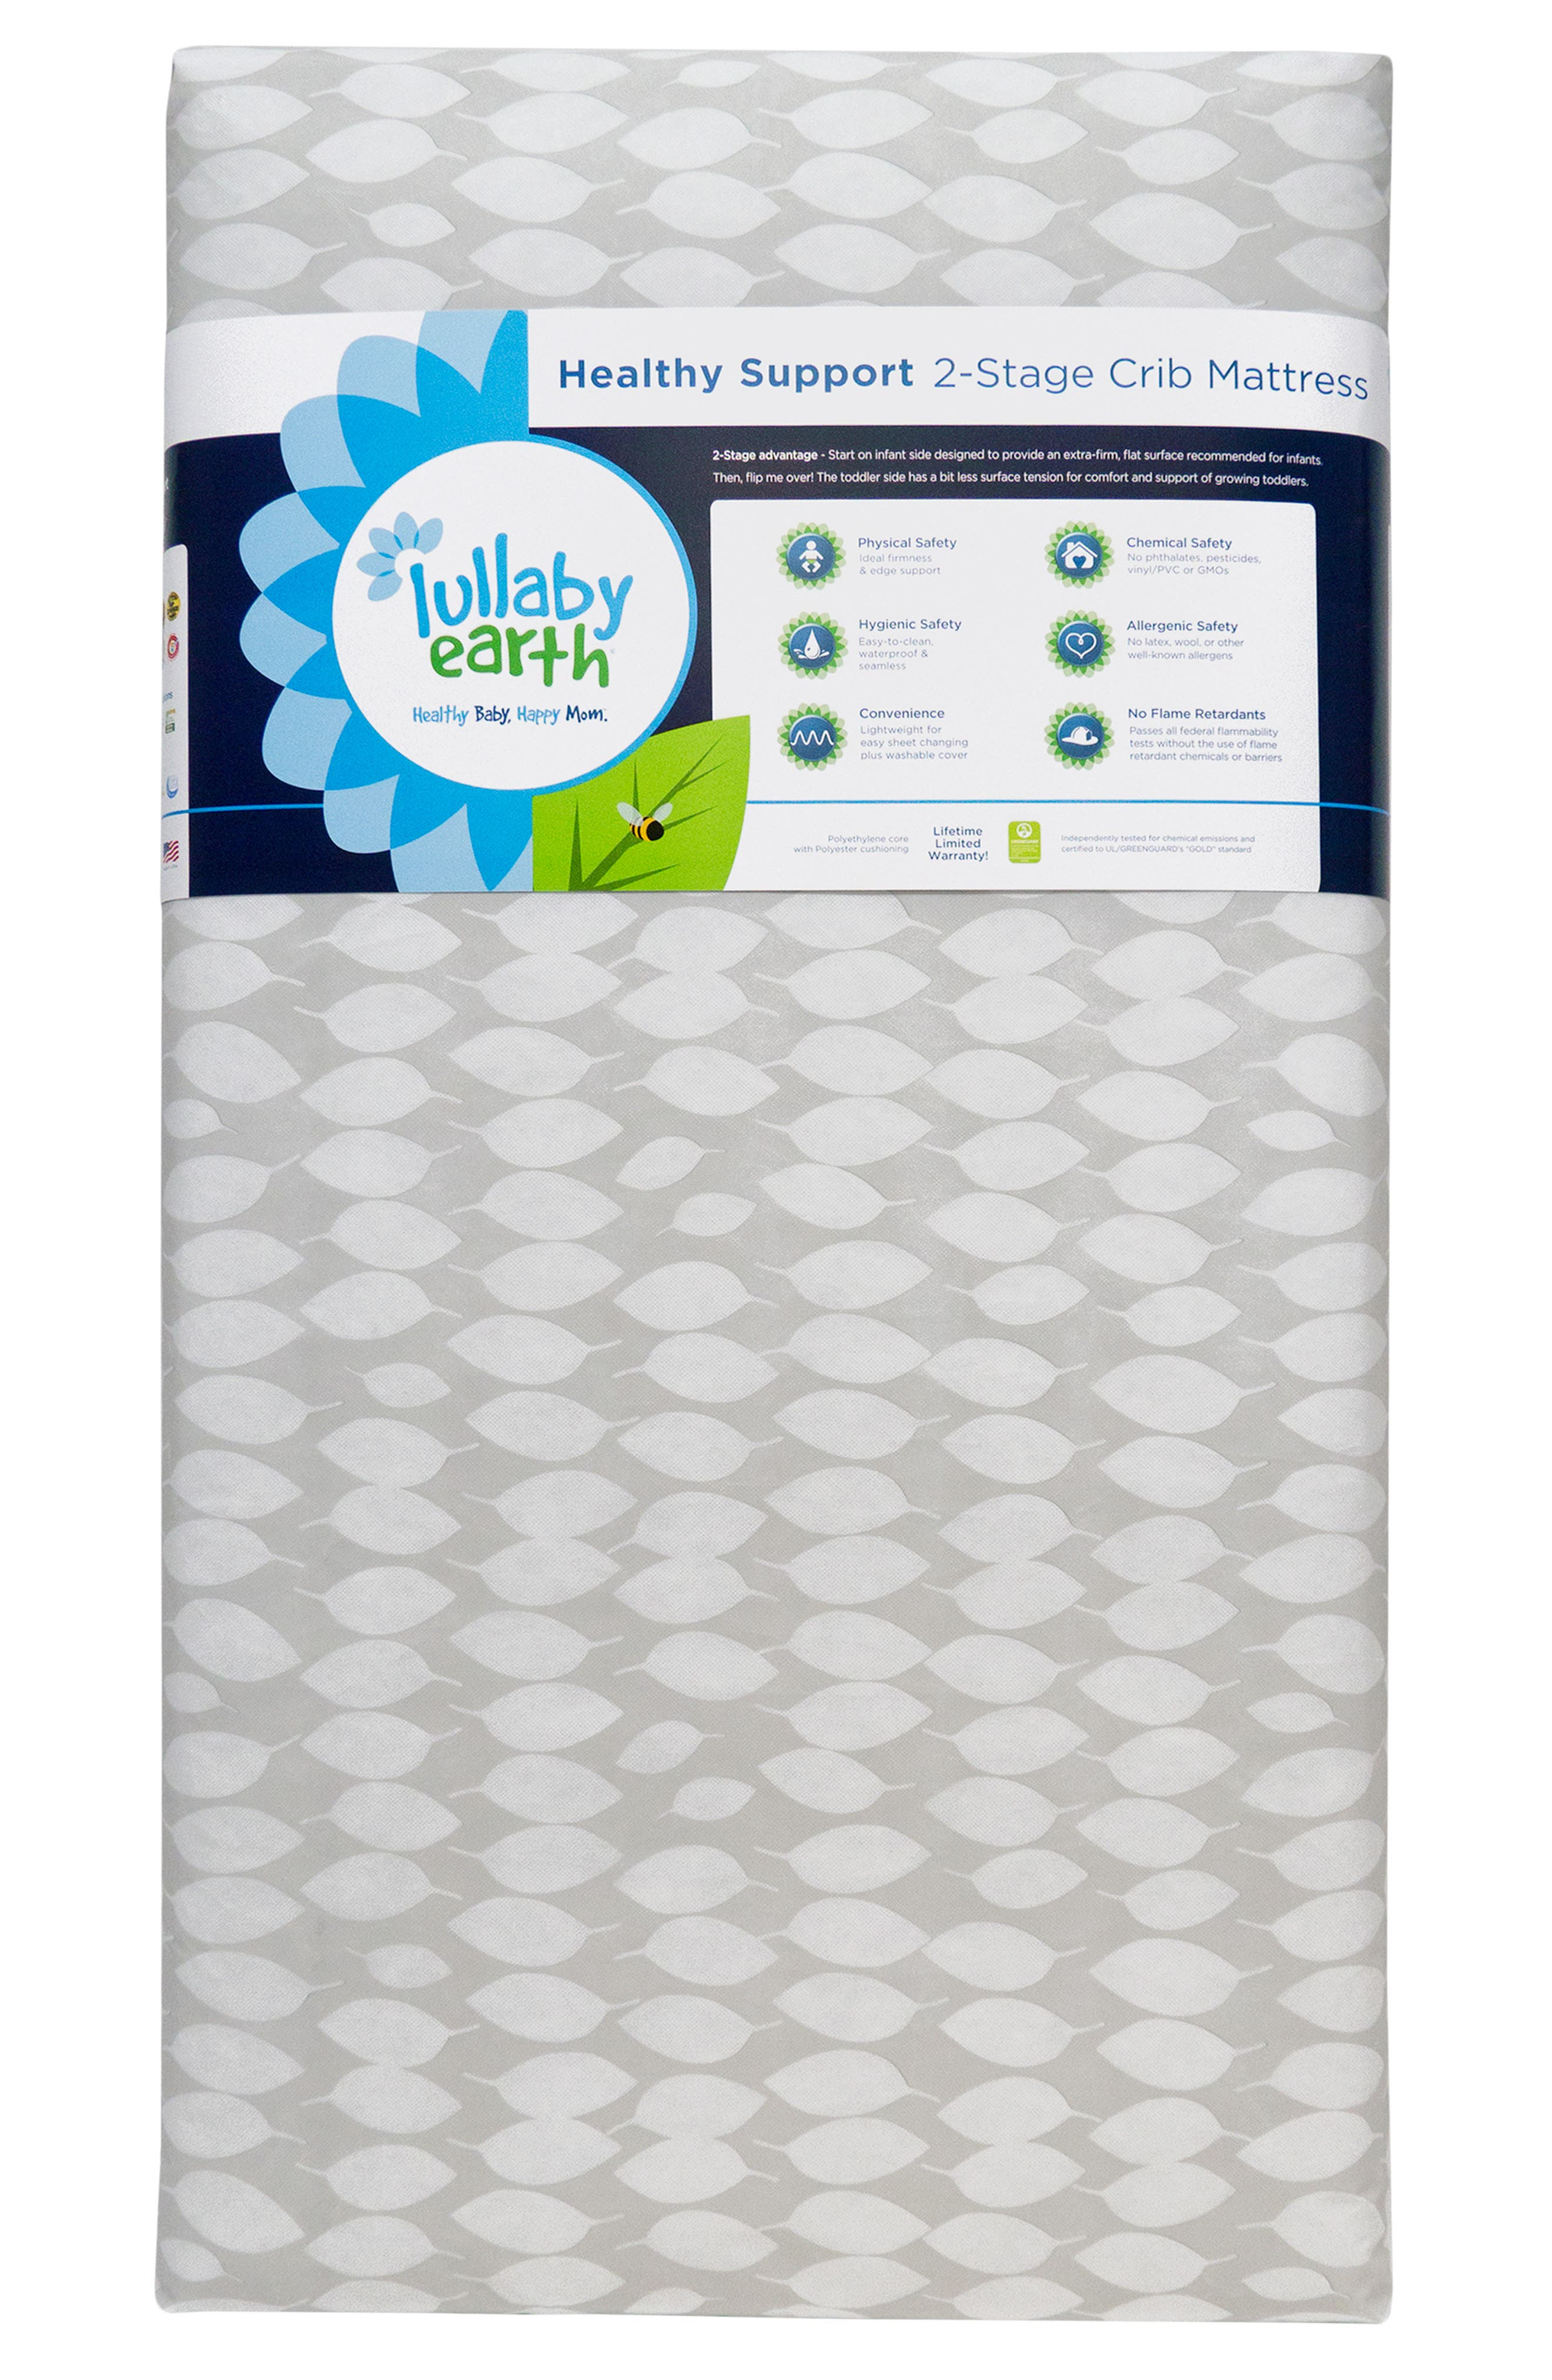 Healthy Support 2-Stage Crib Mattress,                             Main thumbnail 1, color,                             Grey/White